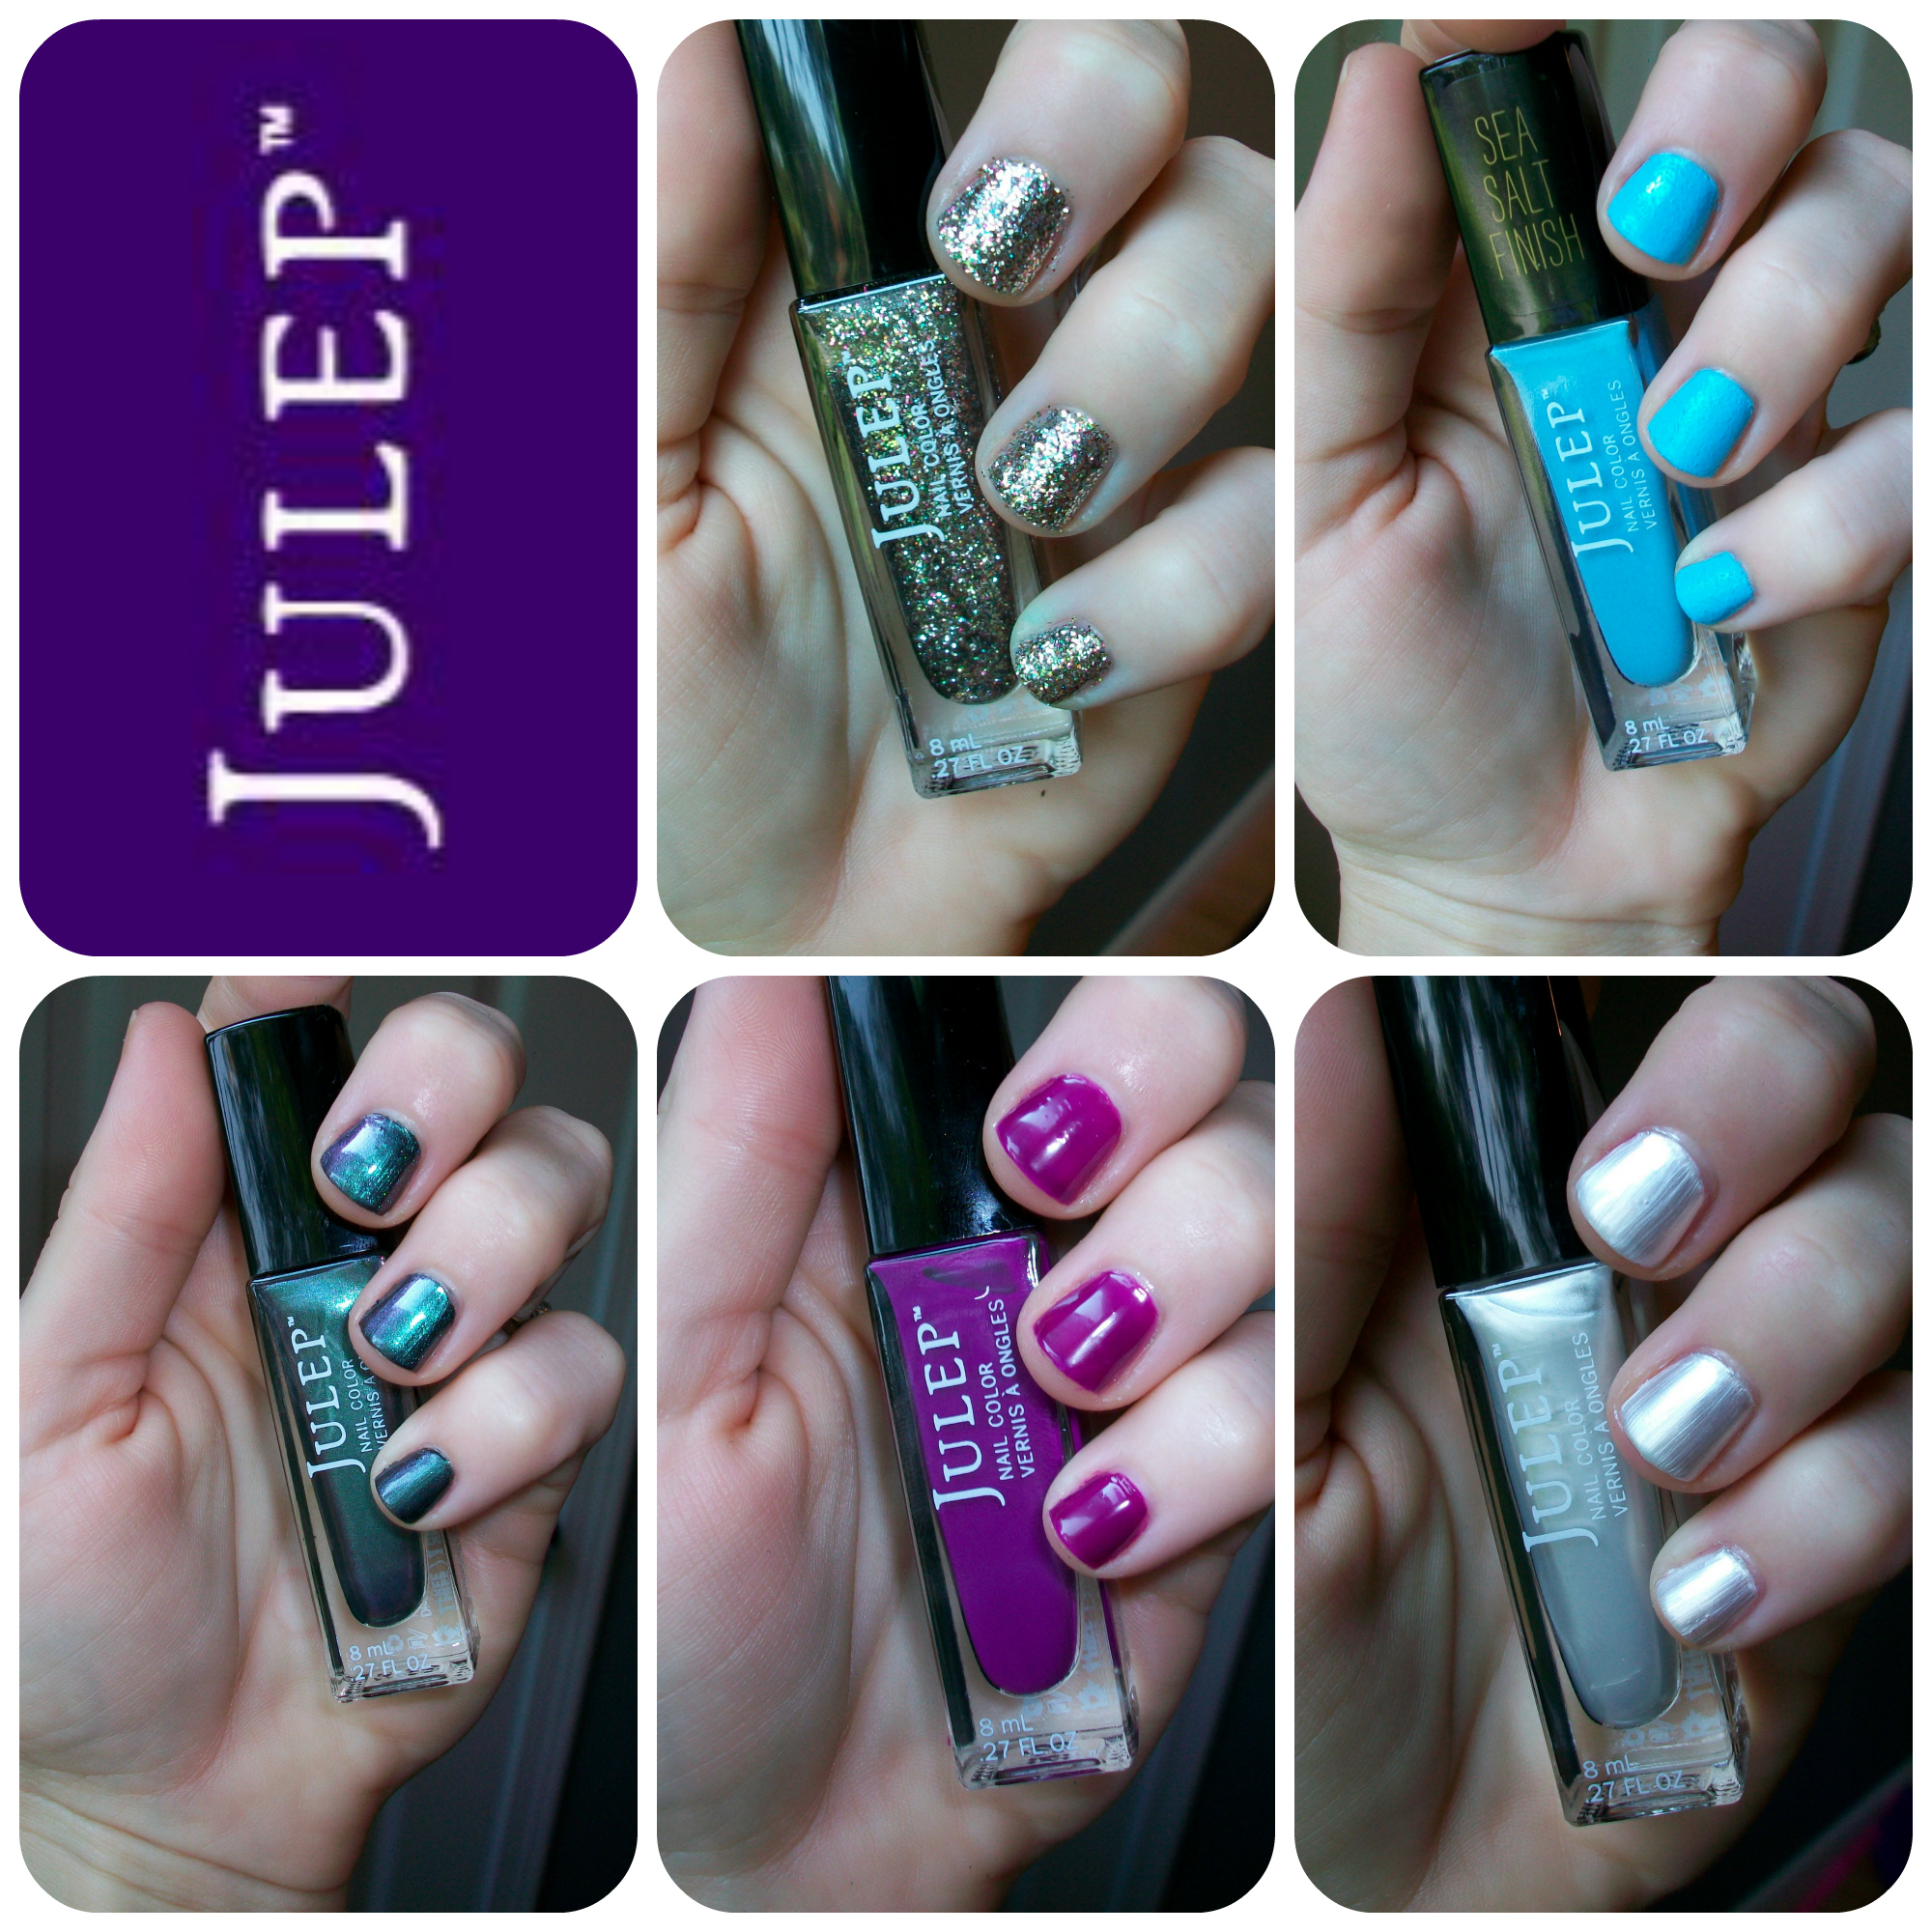 Julep Nail Polish Review + Swatches!! - Jolie Pagaille